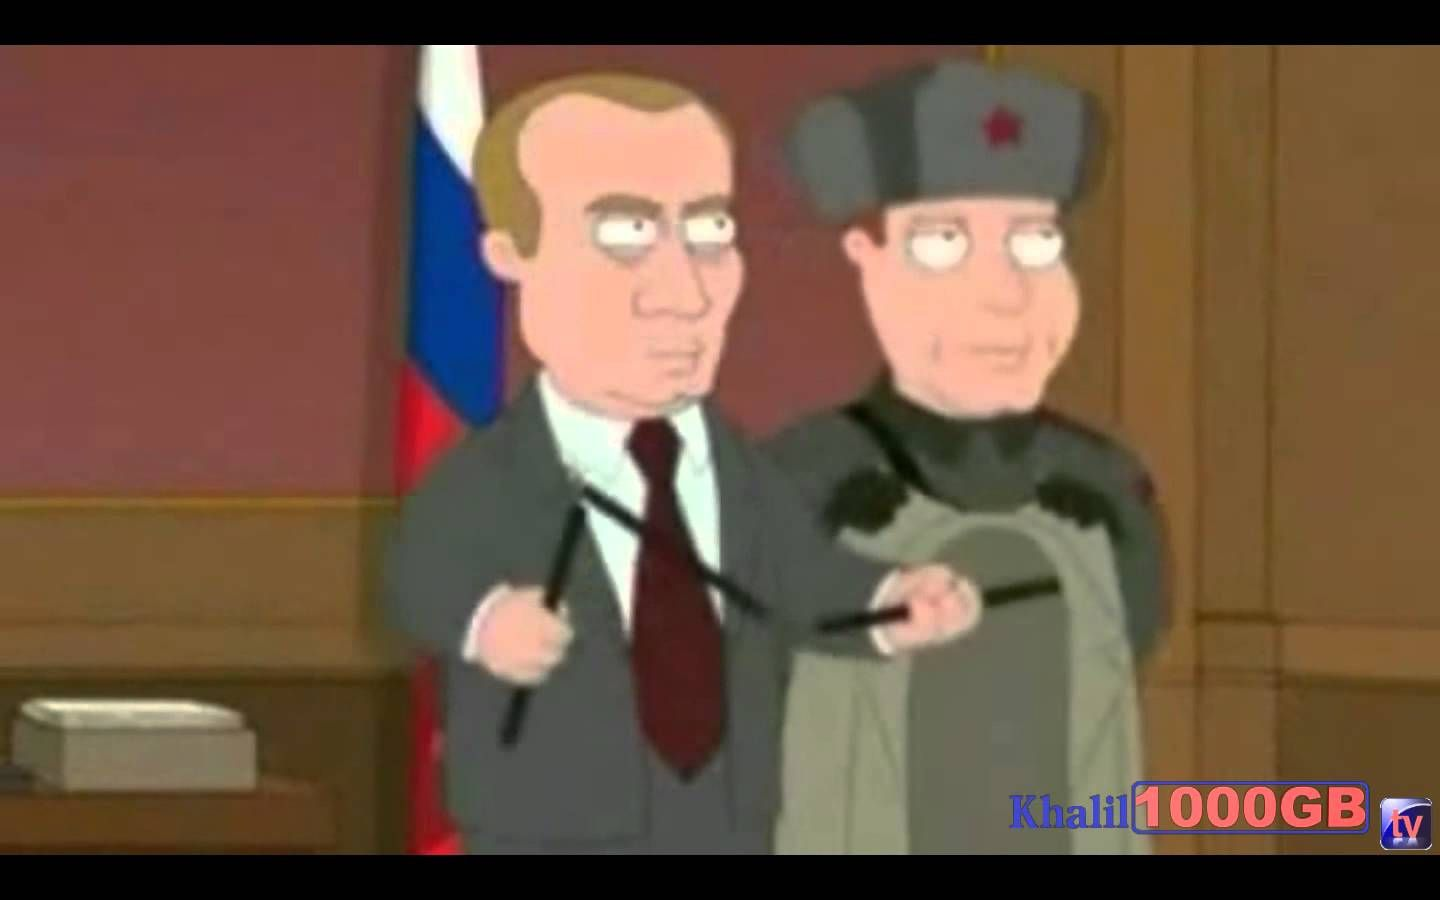 Vladimir Putin In Family Guy Russian Reacting Family Guy Funny Cartoon Gifs Family Guy Videos